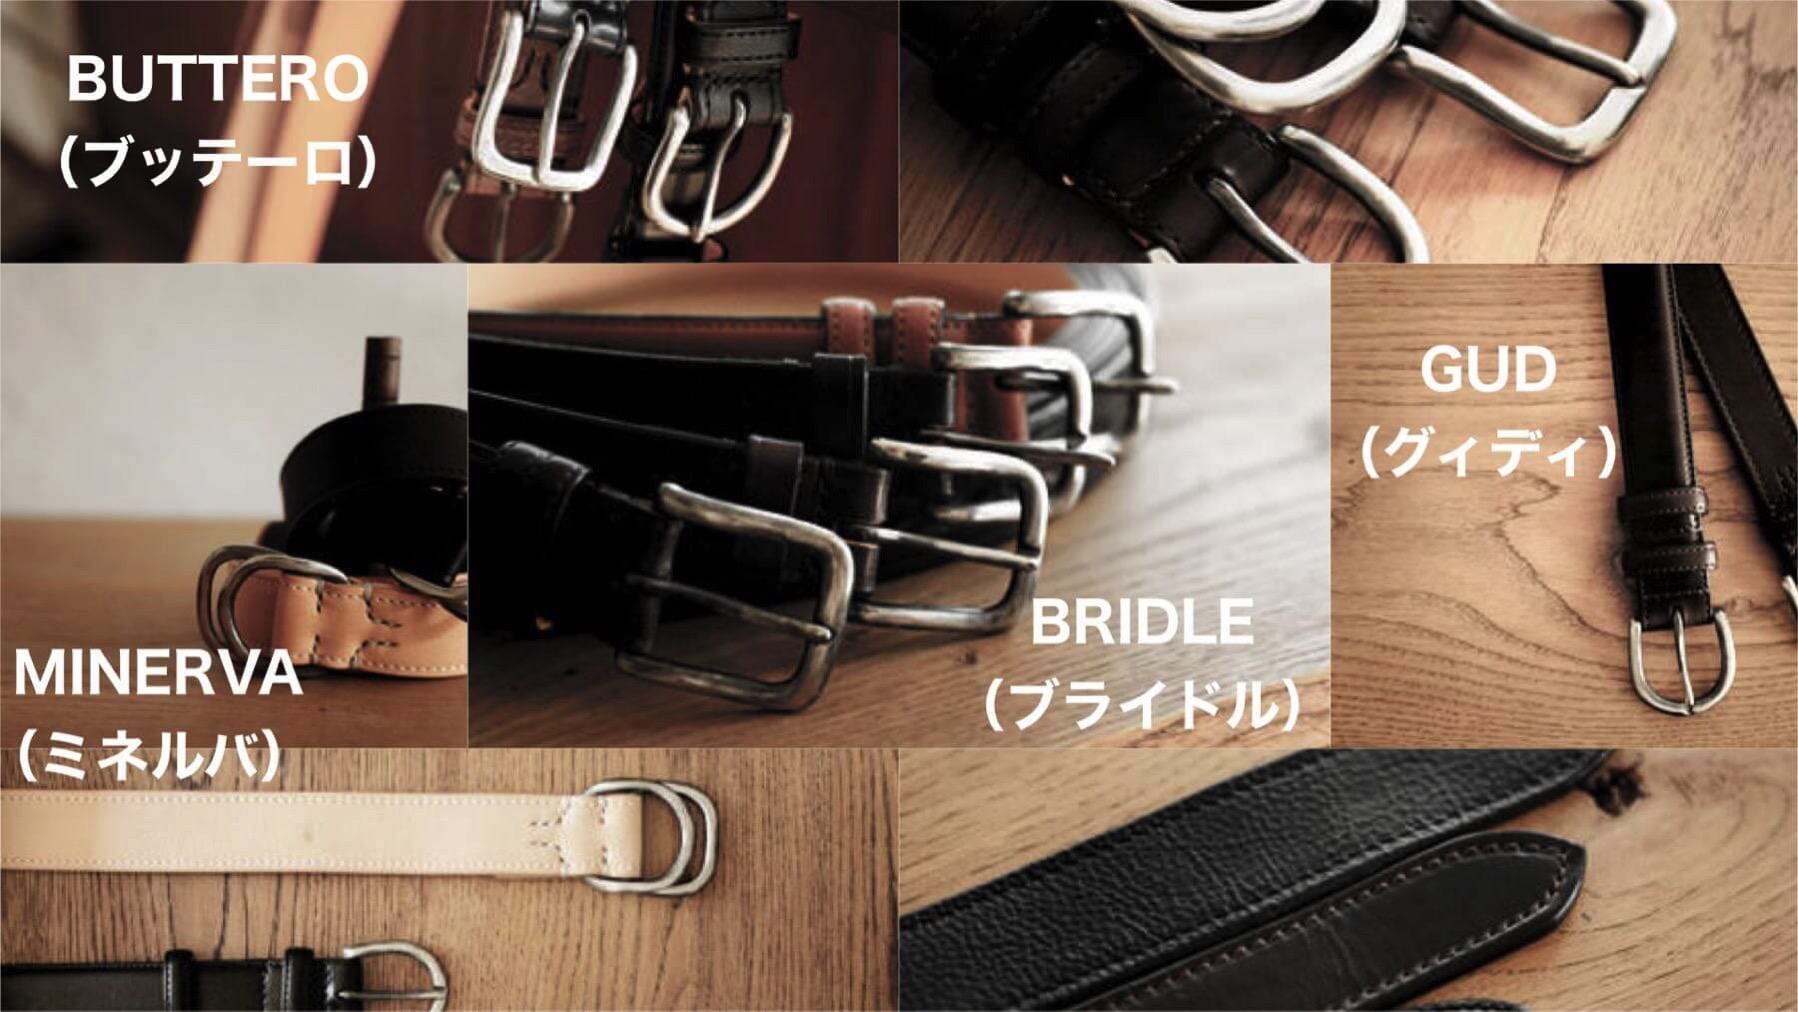 05 Ganzo leather belt BRIDLE BUTTERO GUD  MINERVA